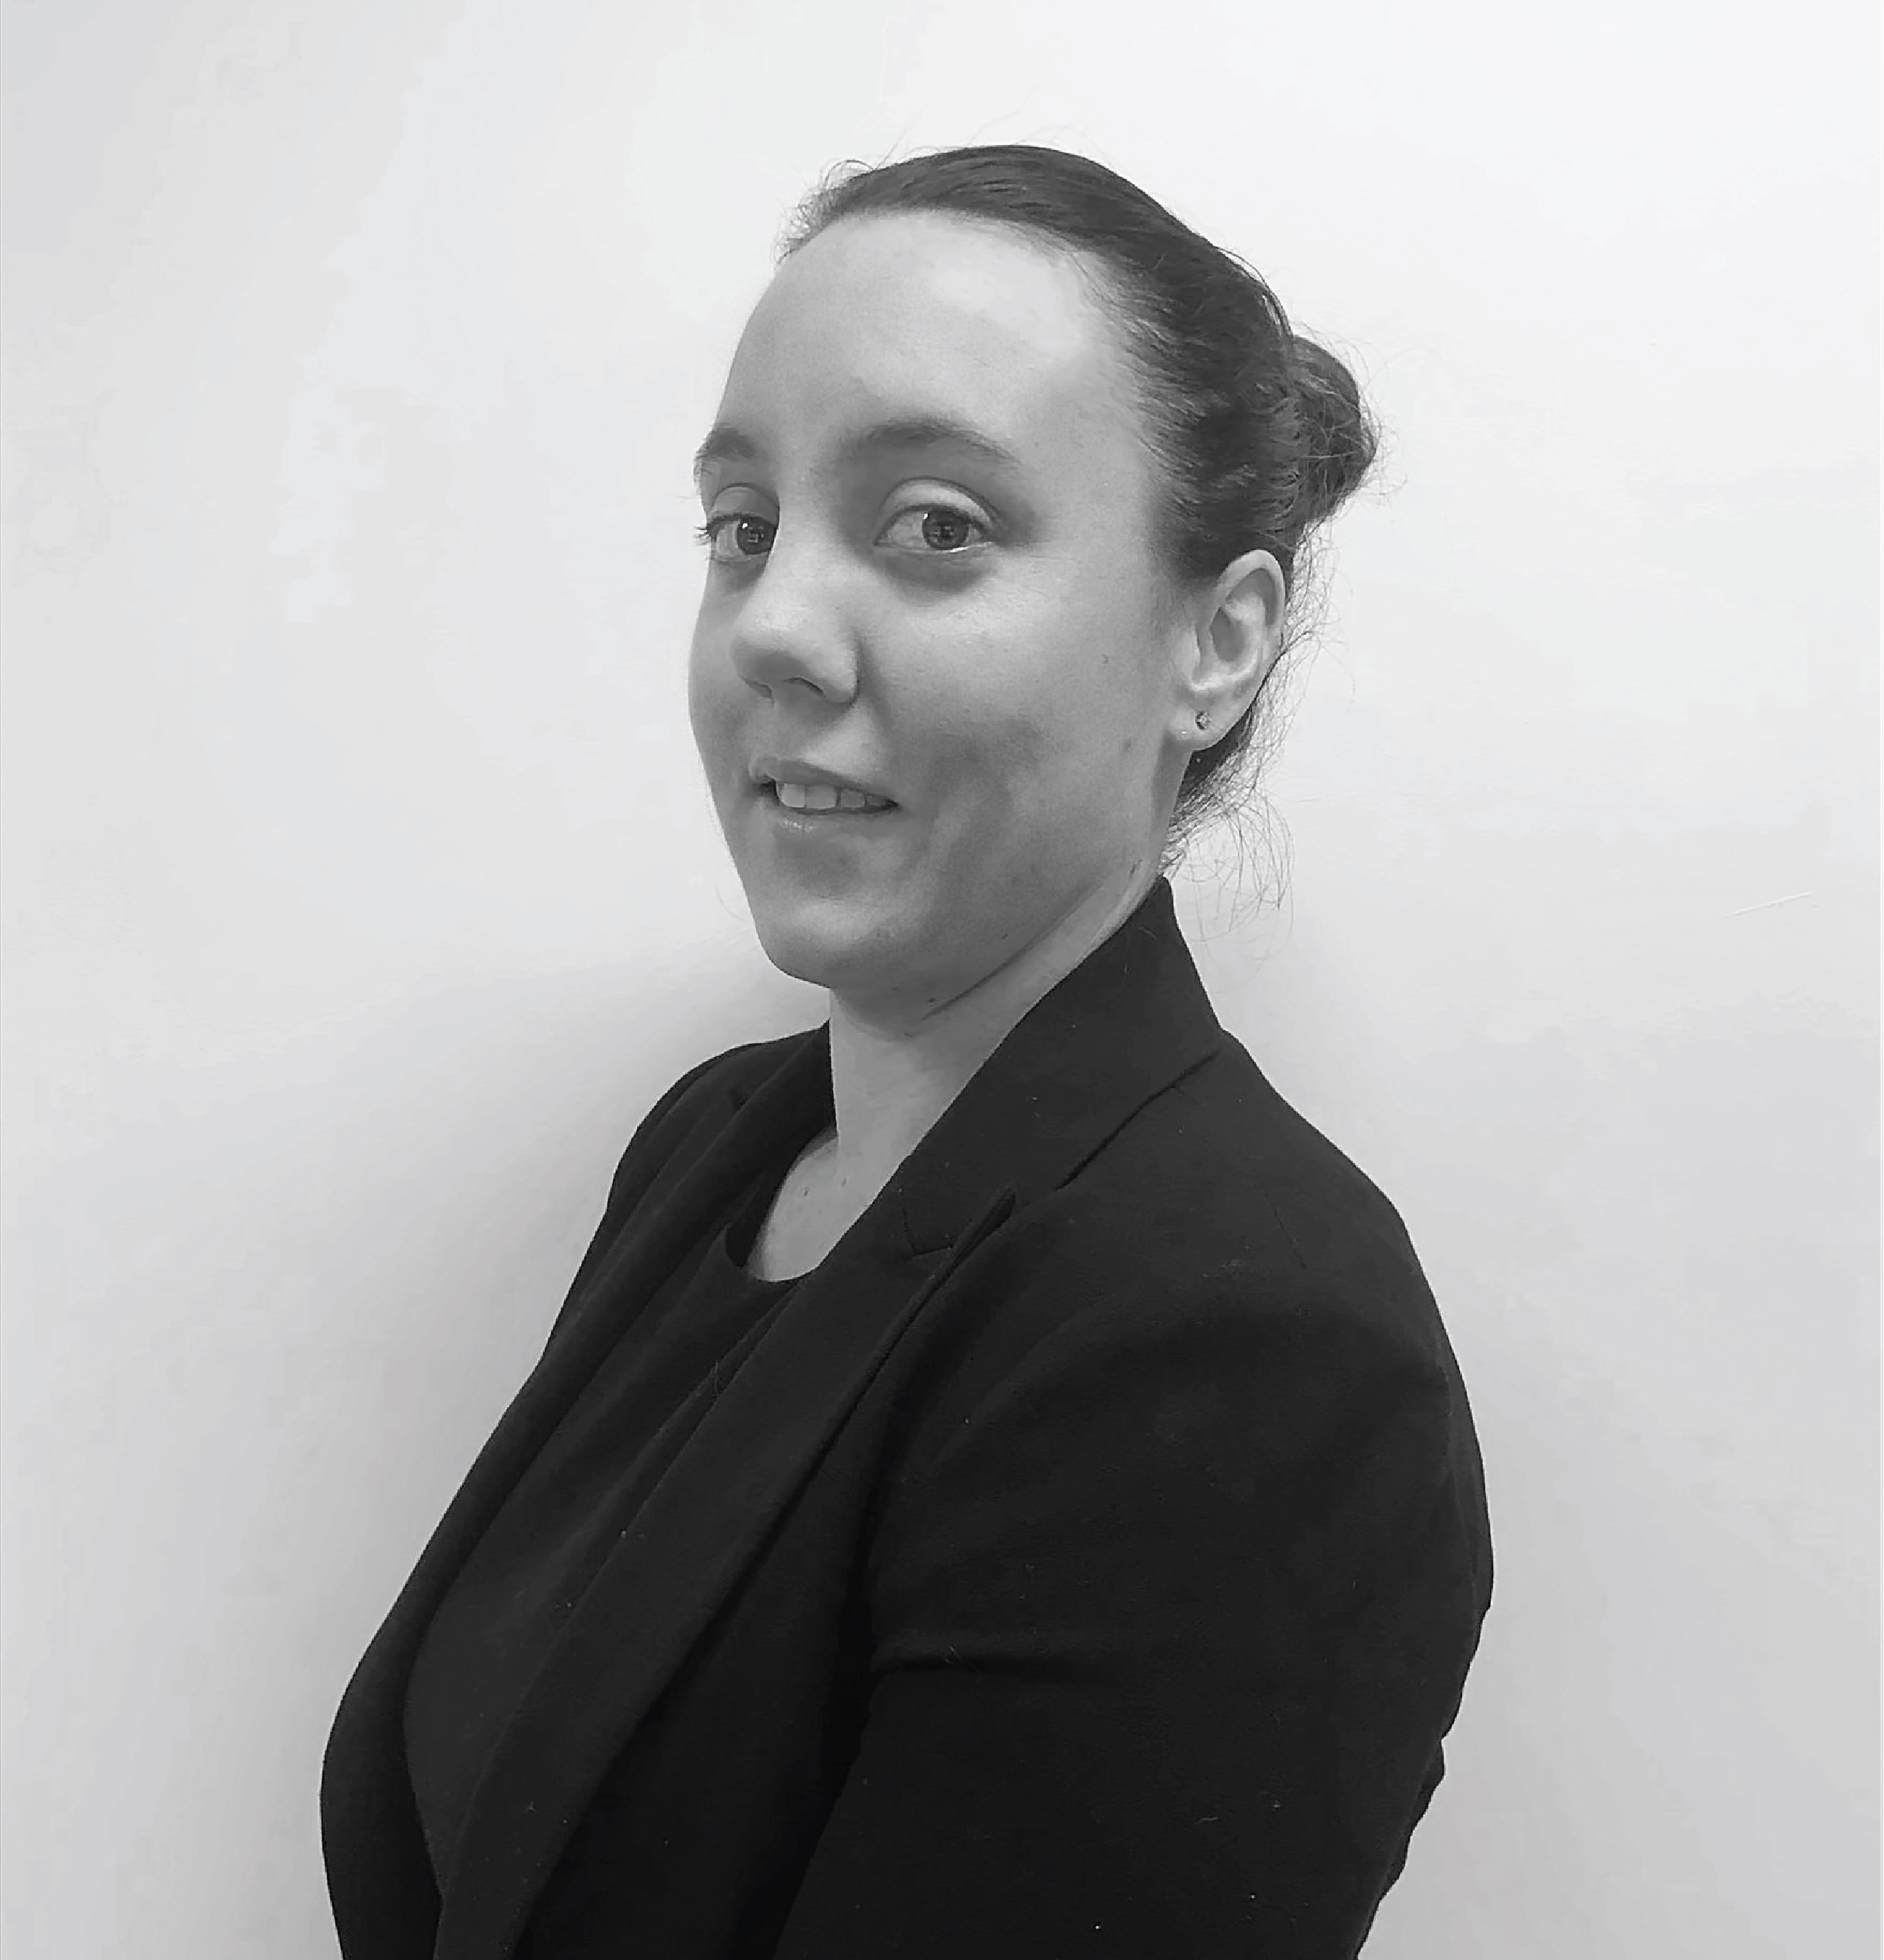 Courtney Green - AccountantAn expert in the setup and management of our Xero system, Courtney is able to offer our clients quality support when meeting their taxation and accounting needs.Contact: courtney@greenaccounting.com.au